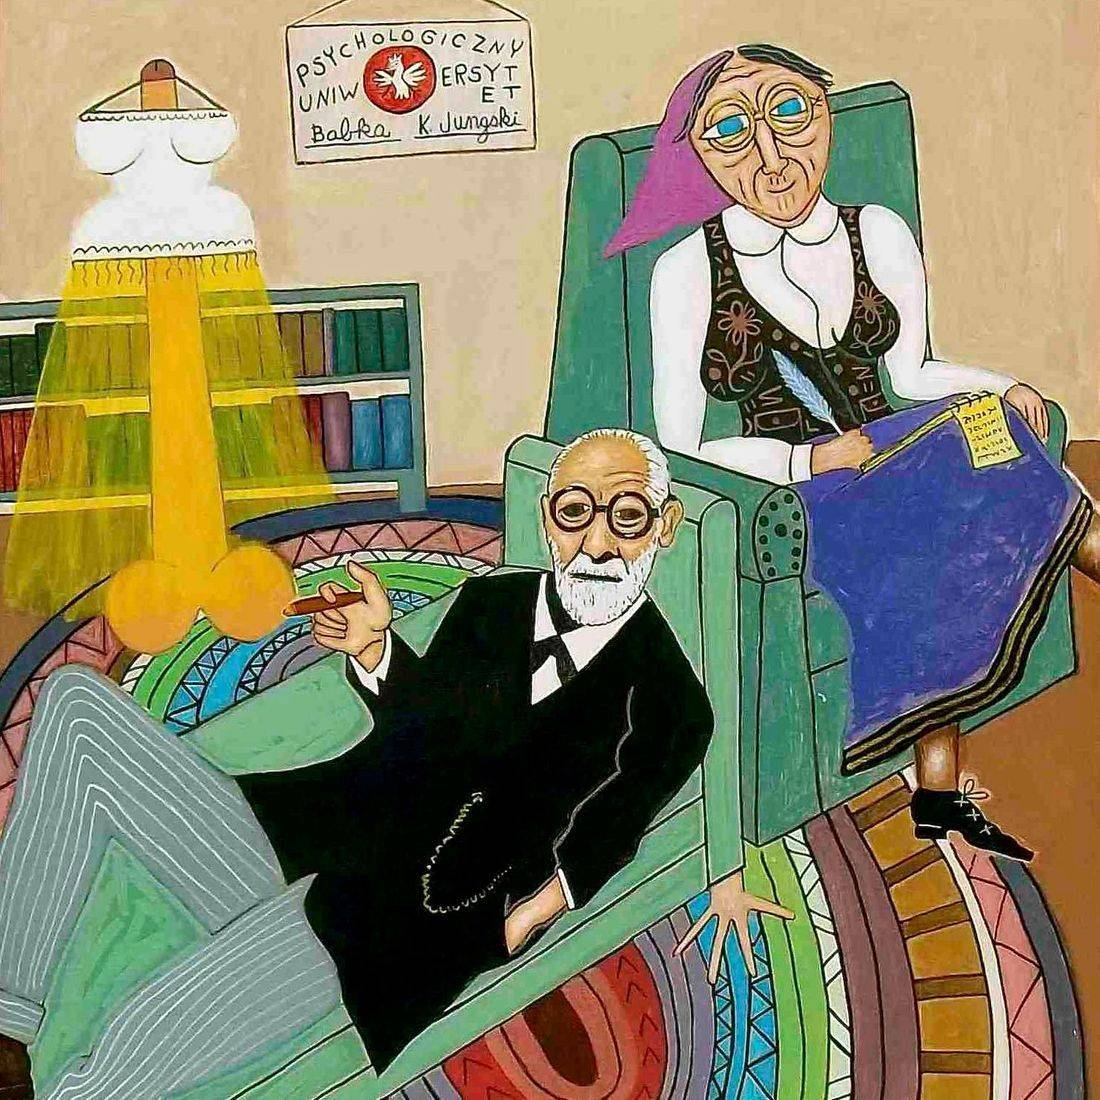 Sigmund Freud, Sometimes a Cigar and Just a Cigar, Kielbasa, Grandmother, Psychotherapist, Psychiatrist, Counselor, Freudian Slip, Sexual Imagery, Braided Rug, Cat, Phalic Symbol